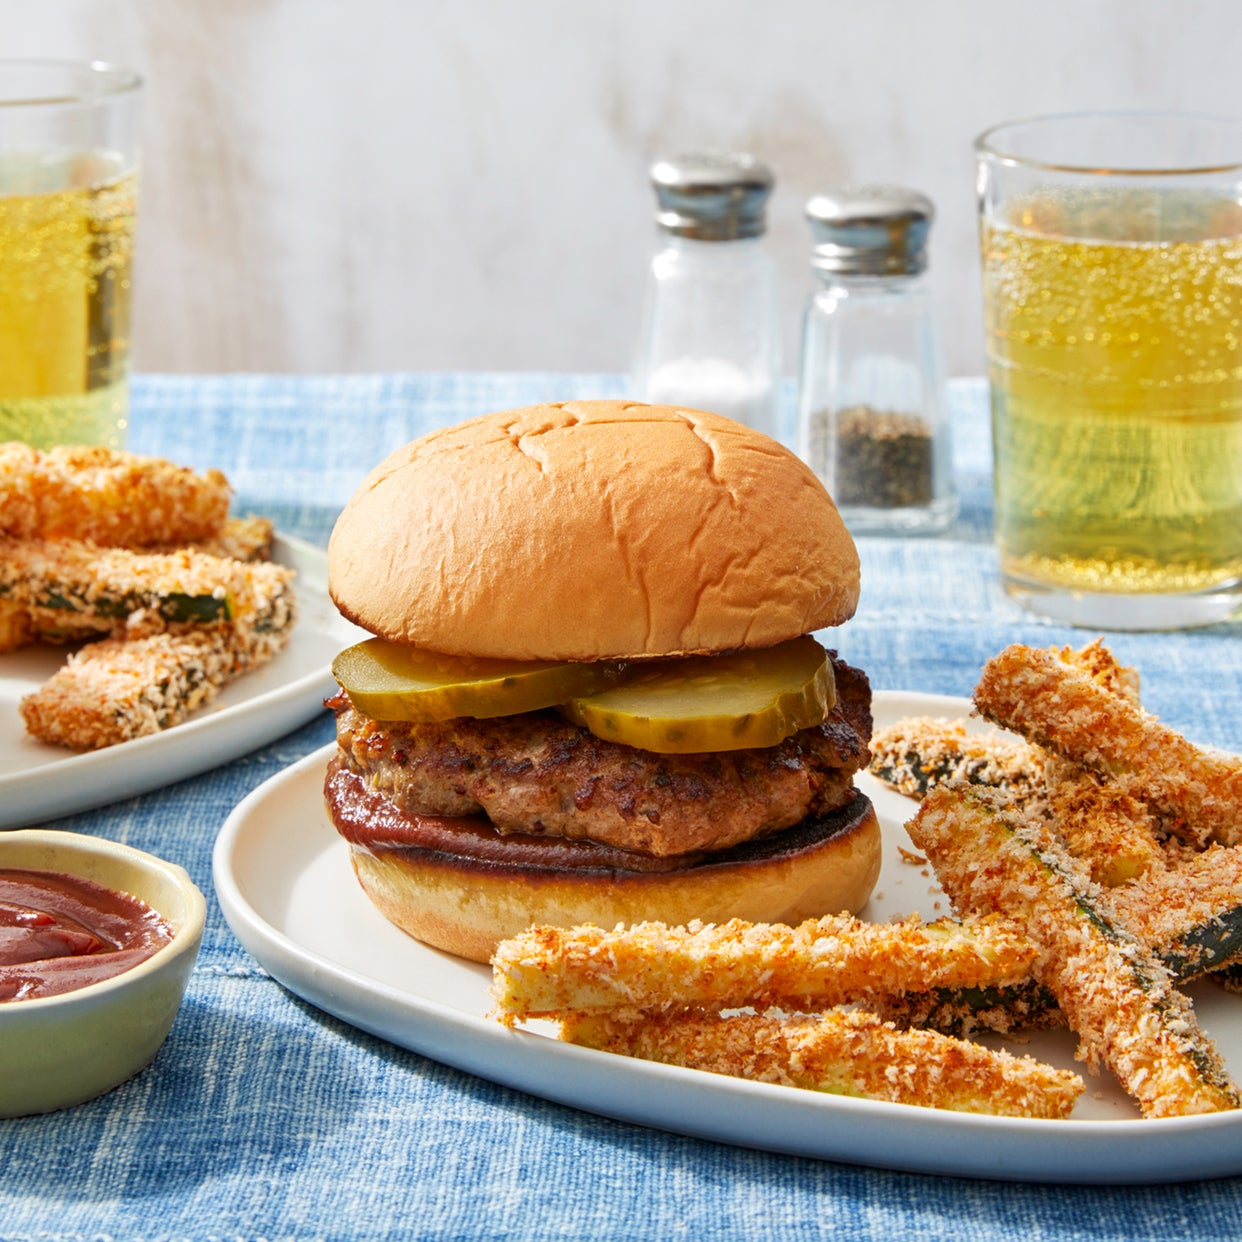 BBQ Pork Burgers with Crispy Zucchini Fries & Smoky Ketchup